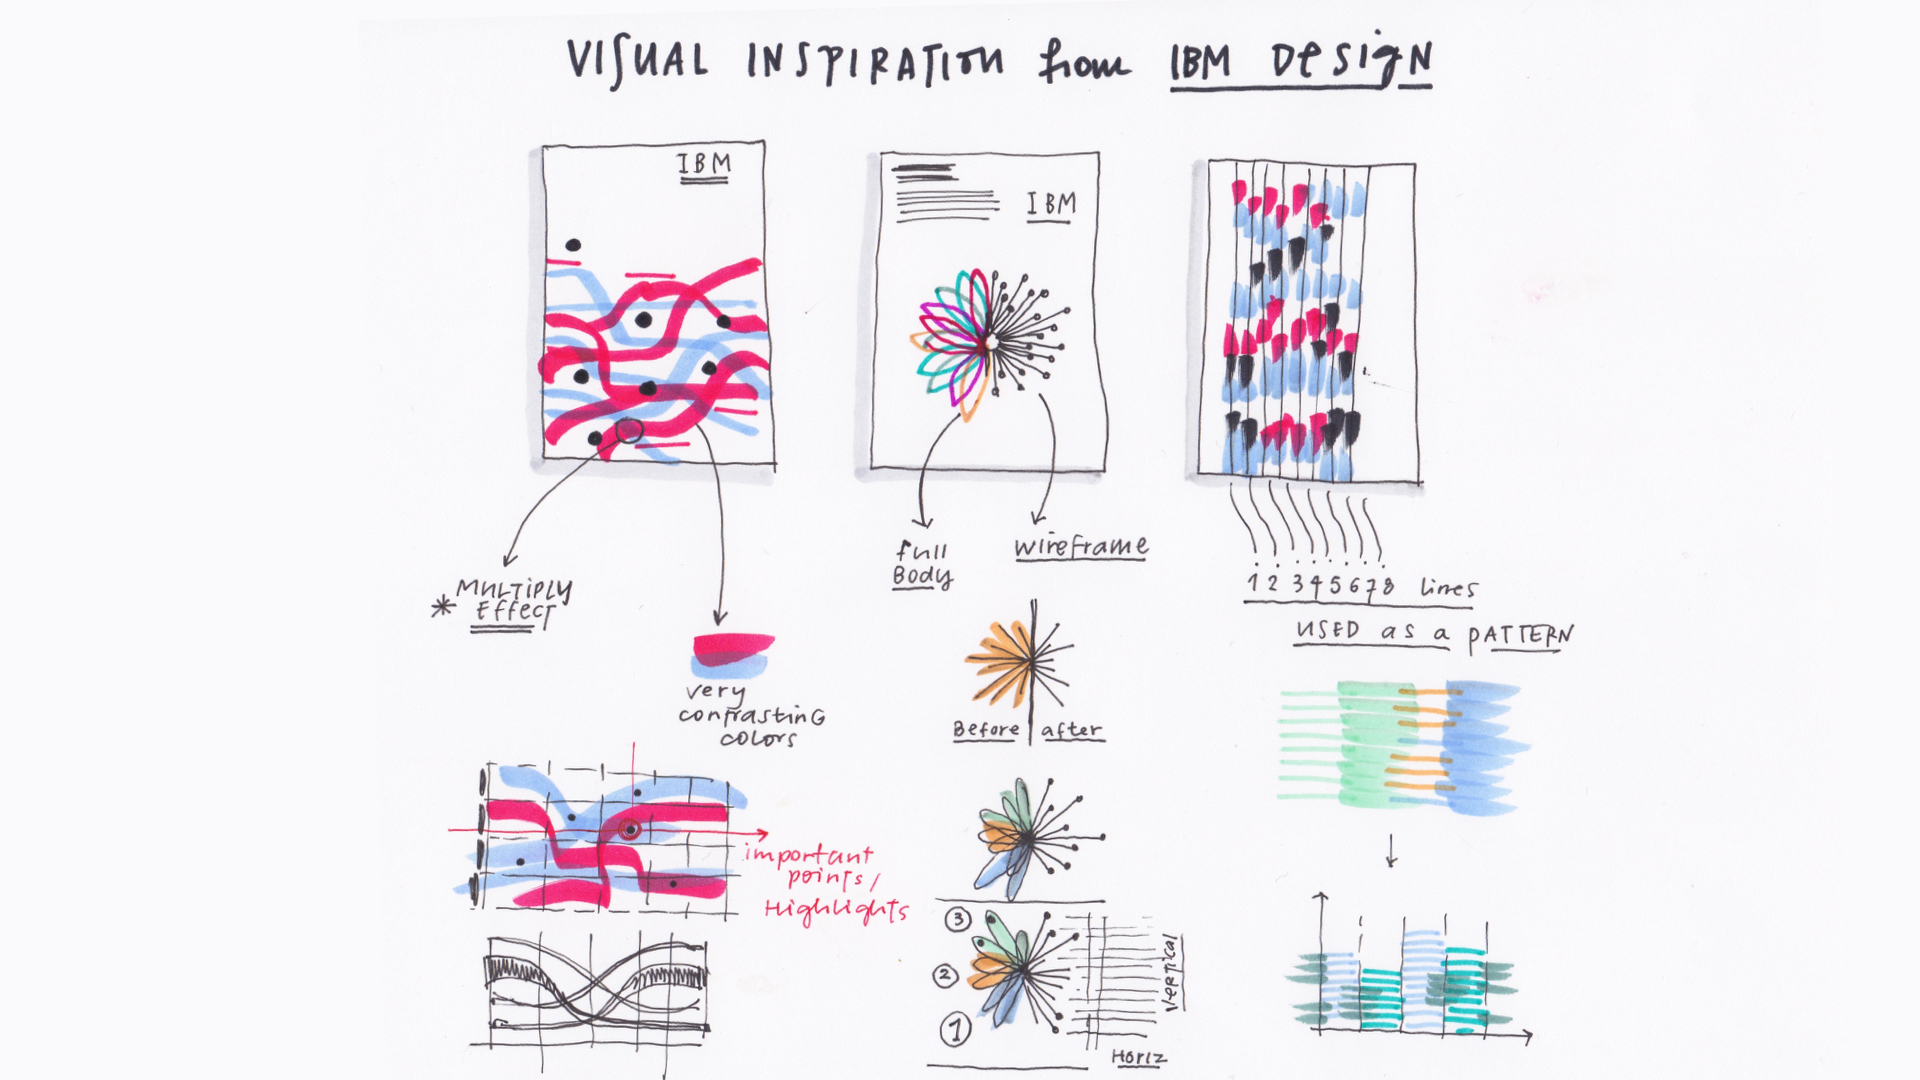 As shown in these initial artworks, we've taken   IBM materials and shapes from the past to create analogies for new data visualization concepts.